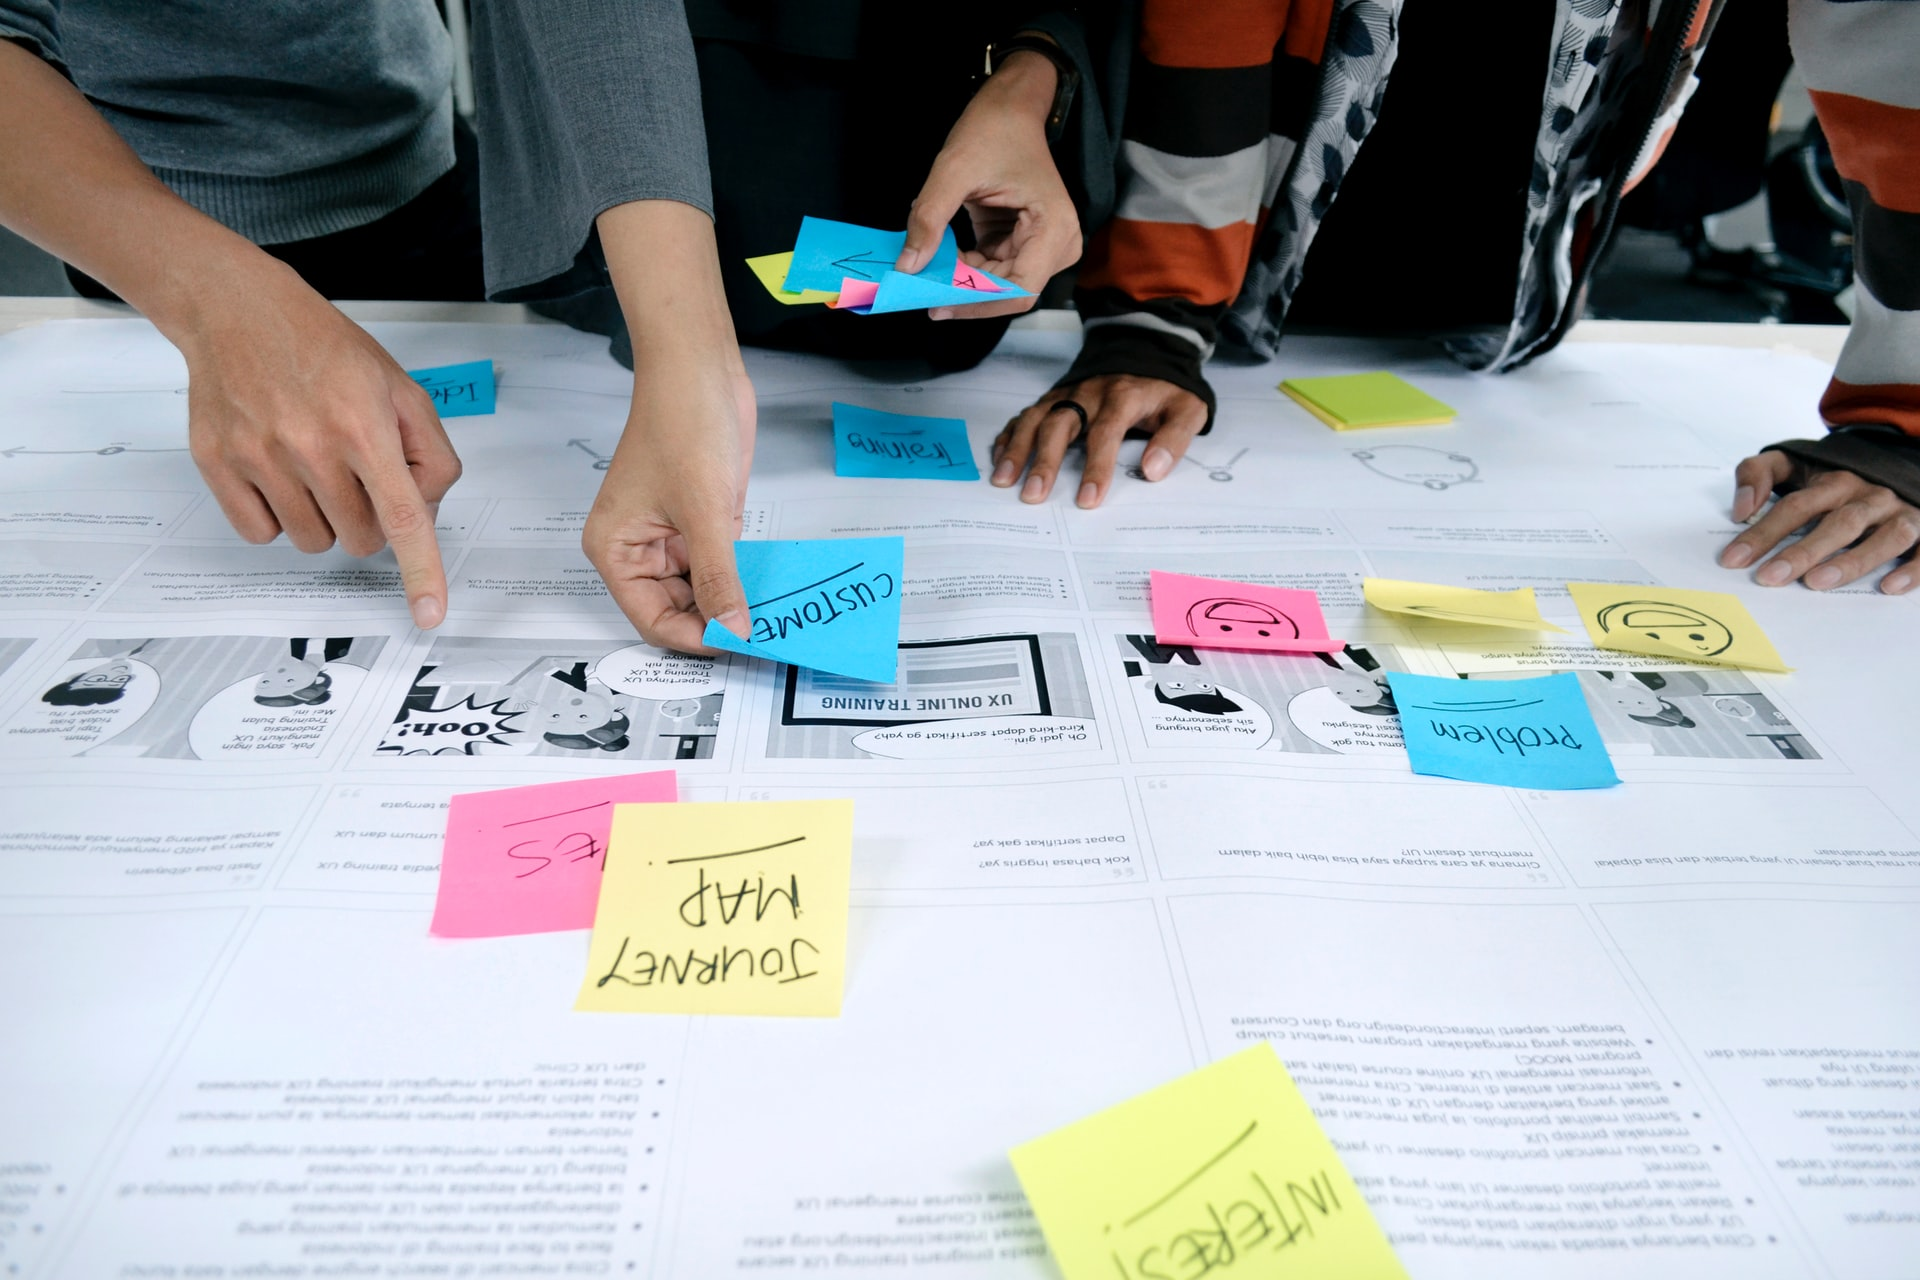 Journey mapping workshop for user experience